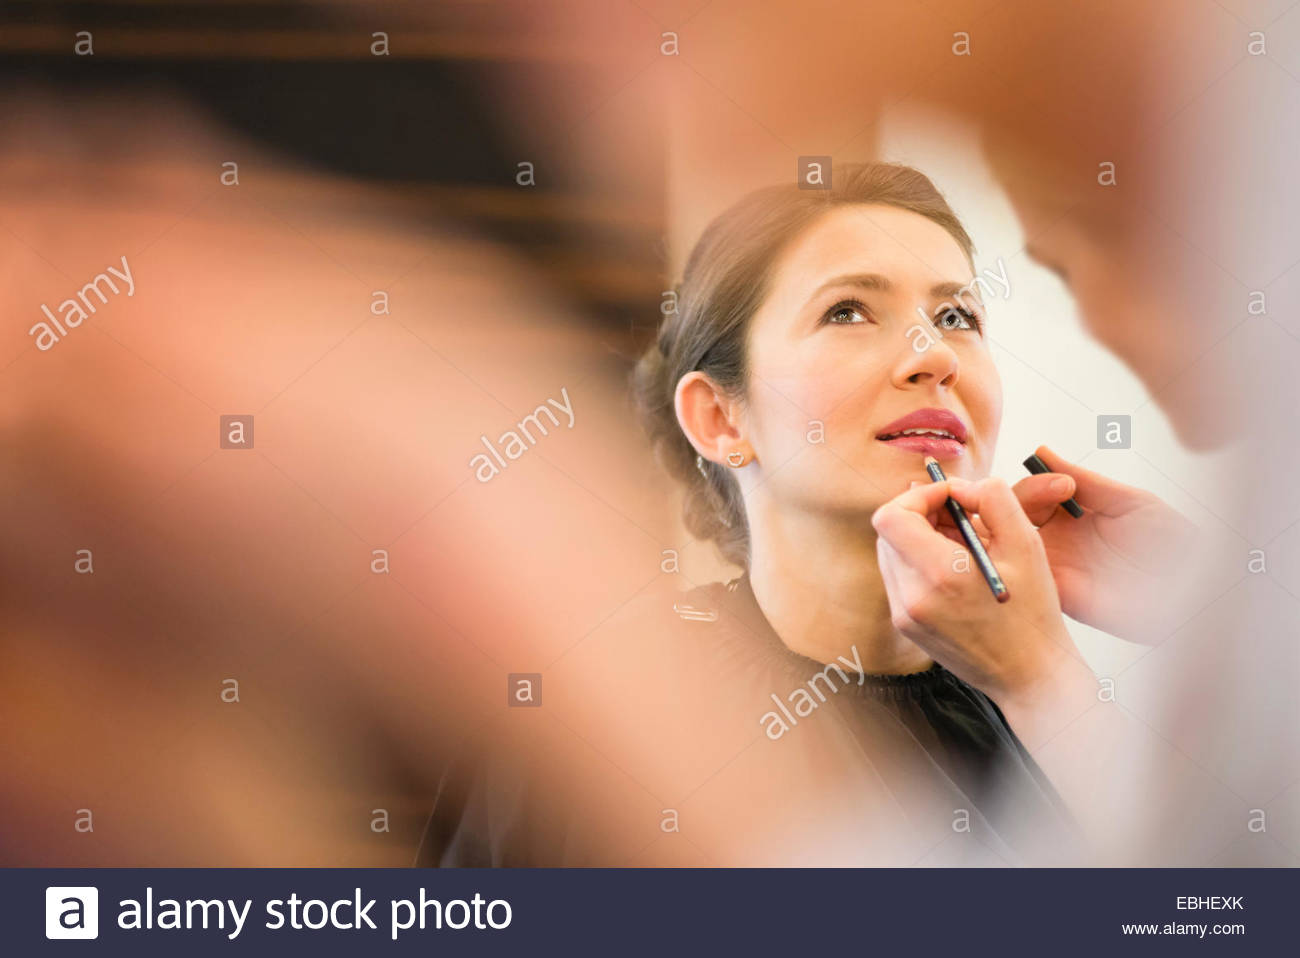 Female friend applying lip liner to brides lips - Stock Image